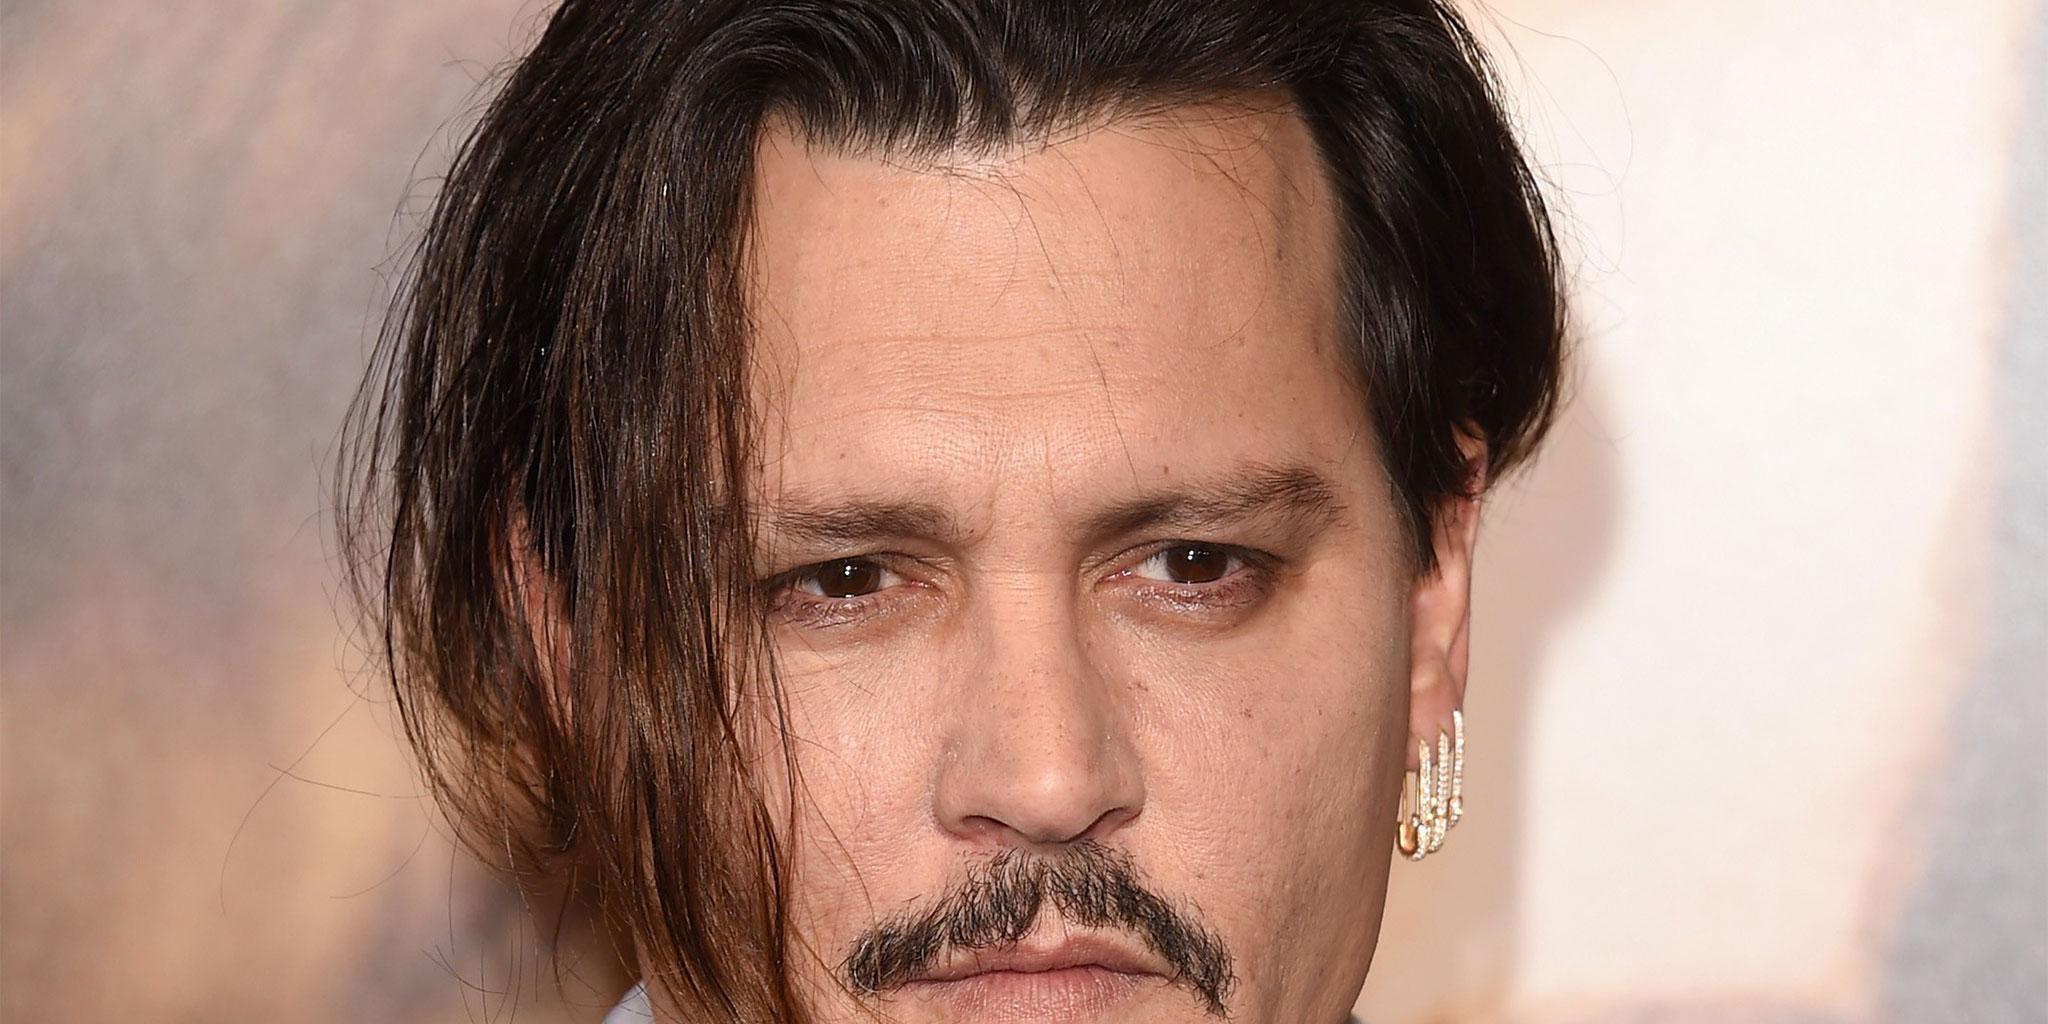 Johnny Depp Dating Again Amid Amber Heard Lawsuit? - The Truth!